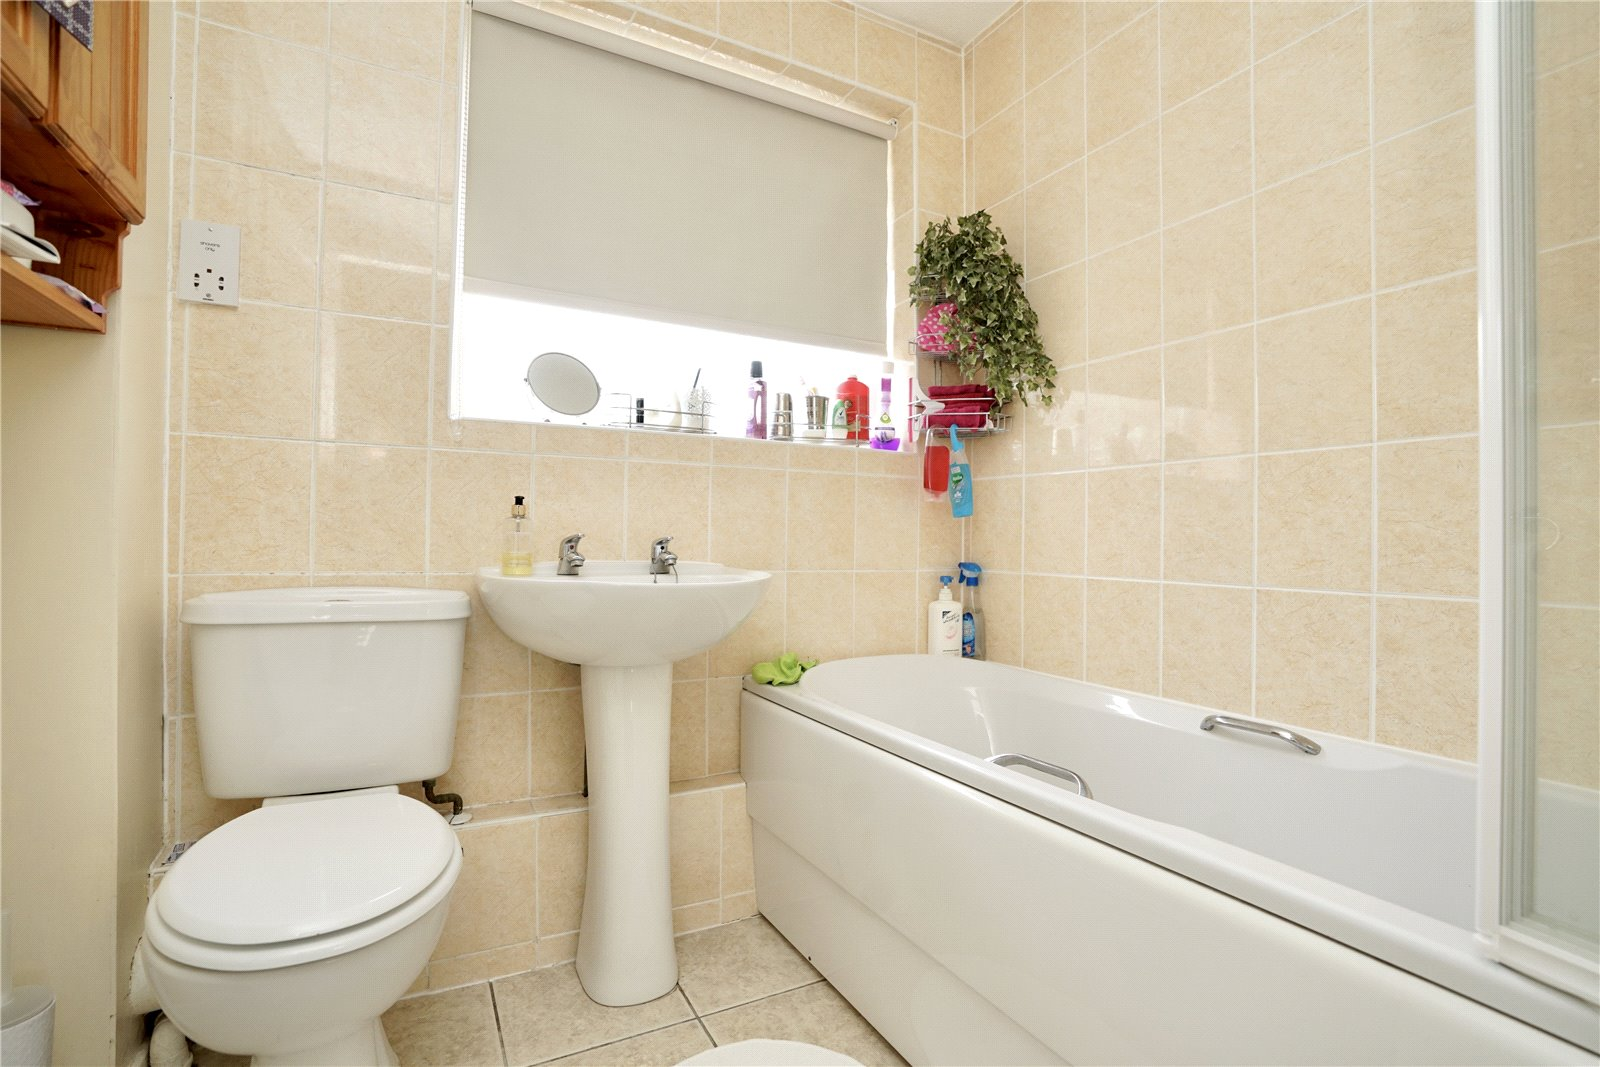 3 bed house for sale in Cunningham Way, Eaton Socon  - Property Image 9